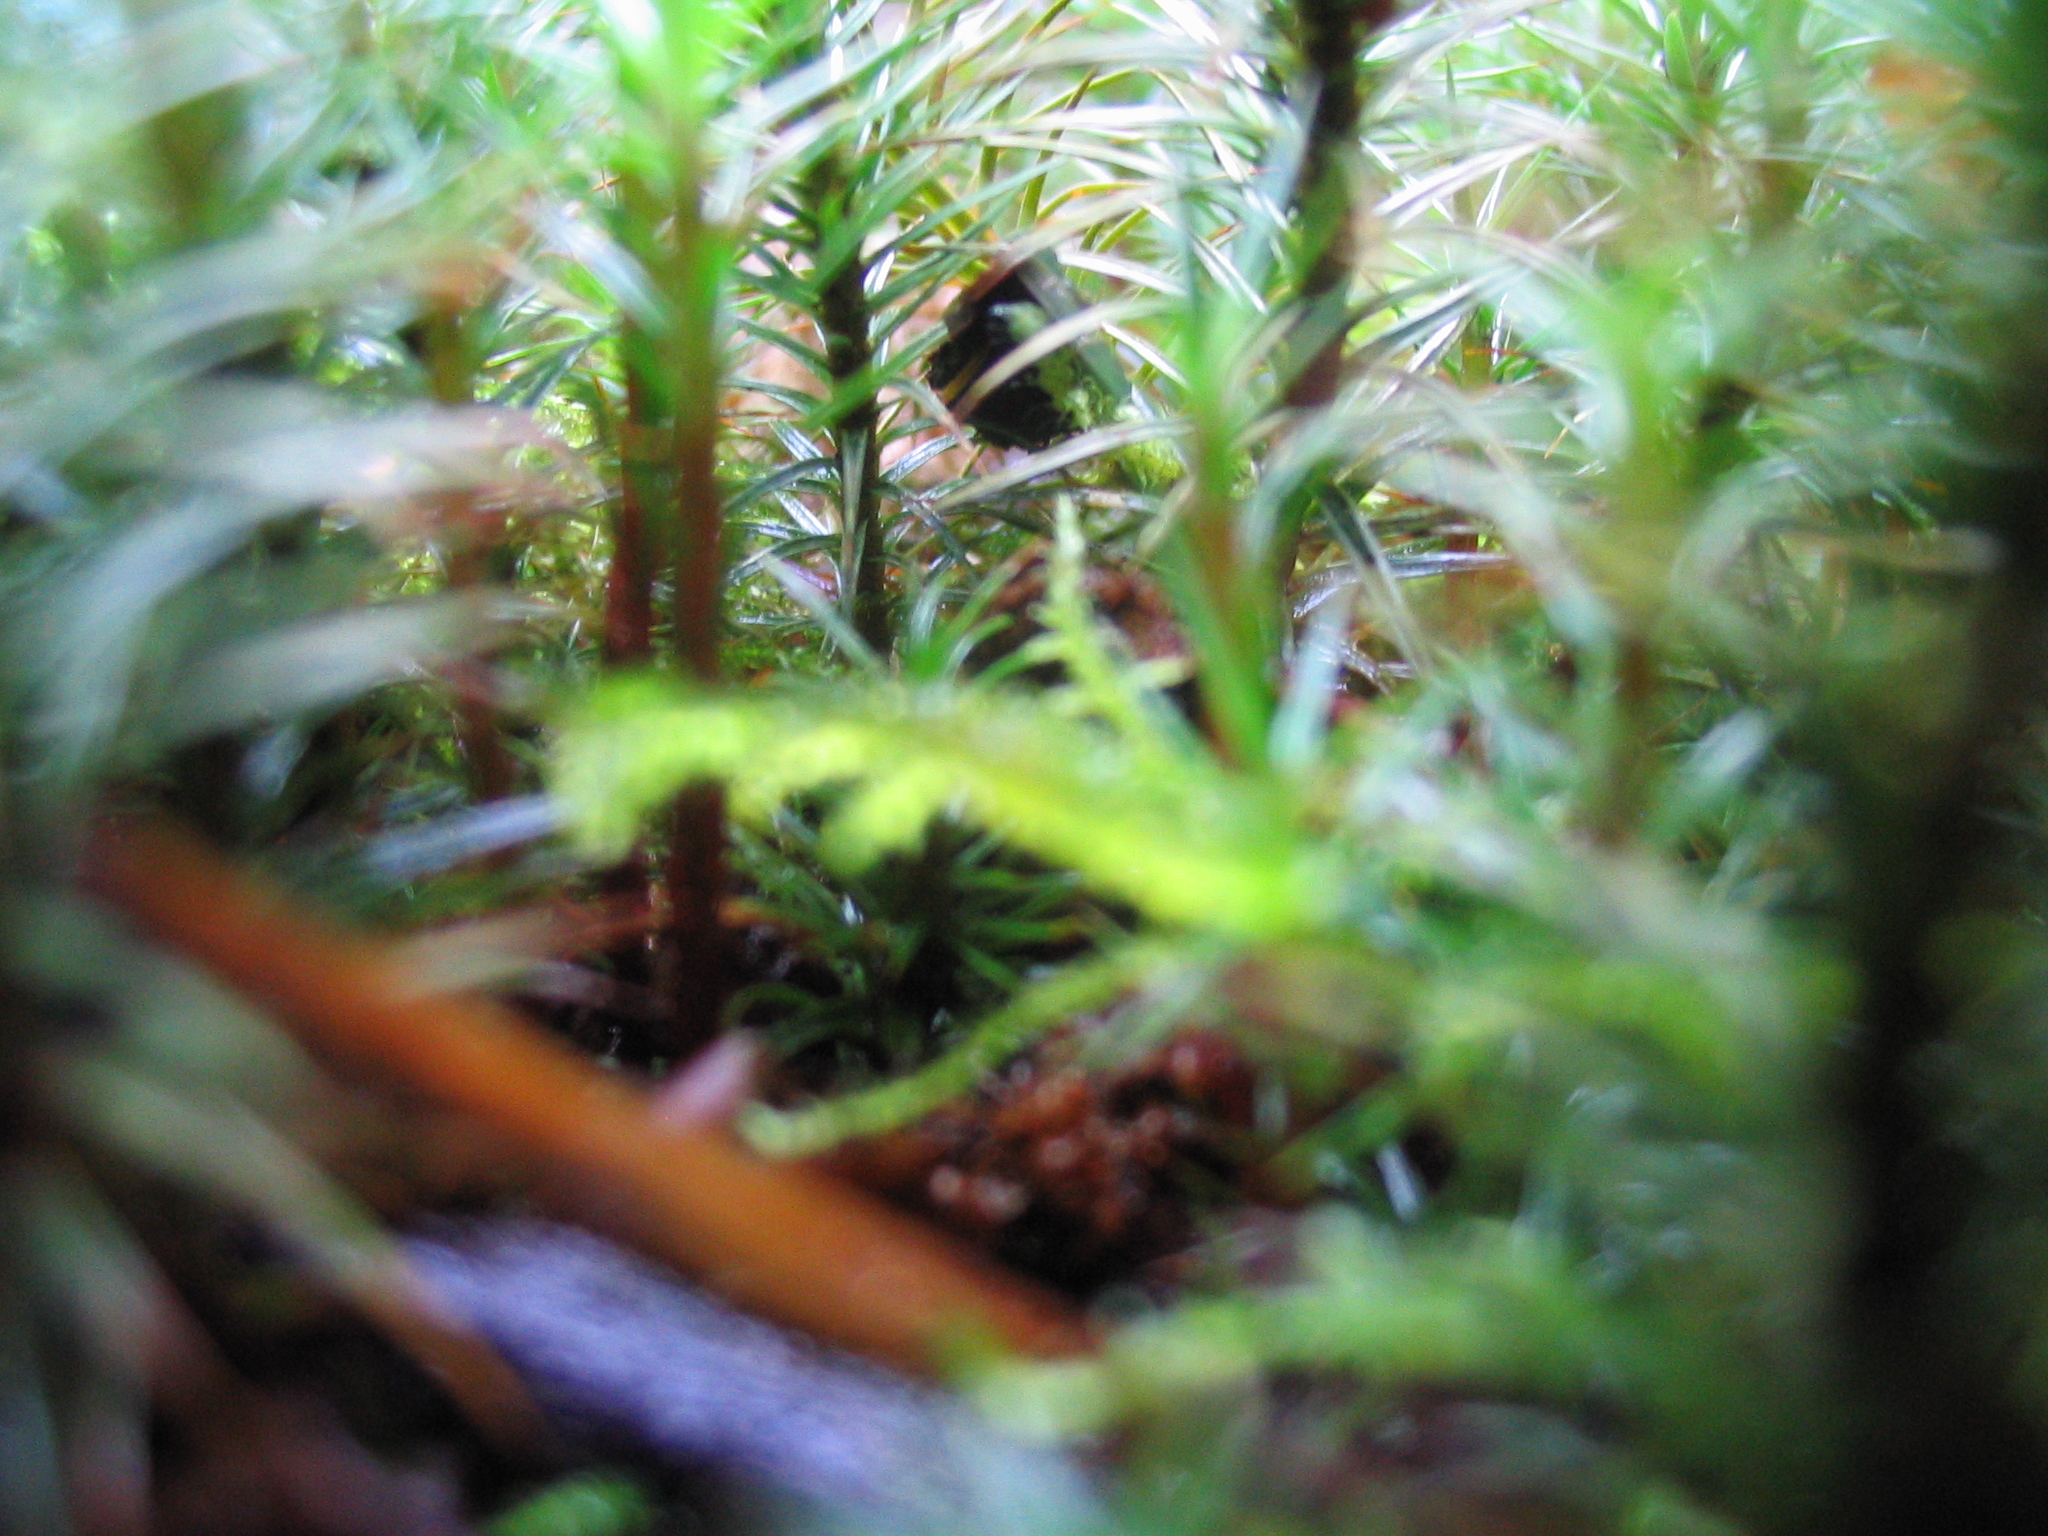 In the forest of tiny trees...